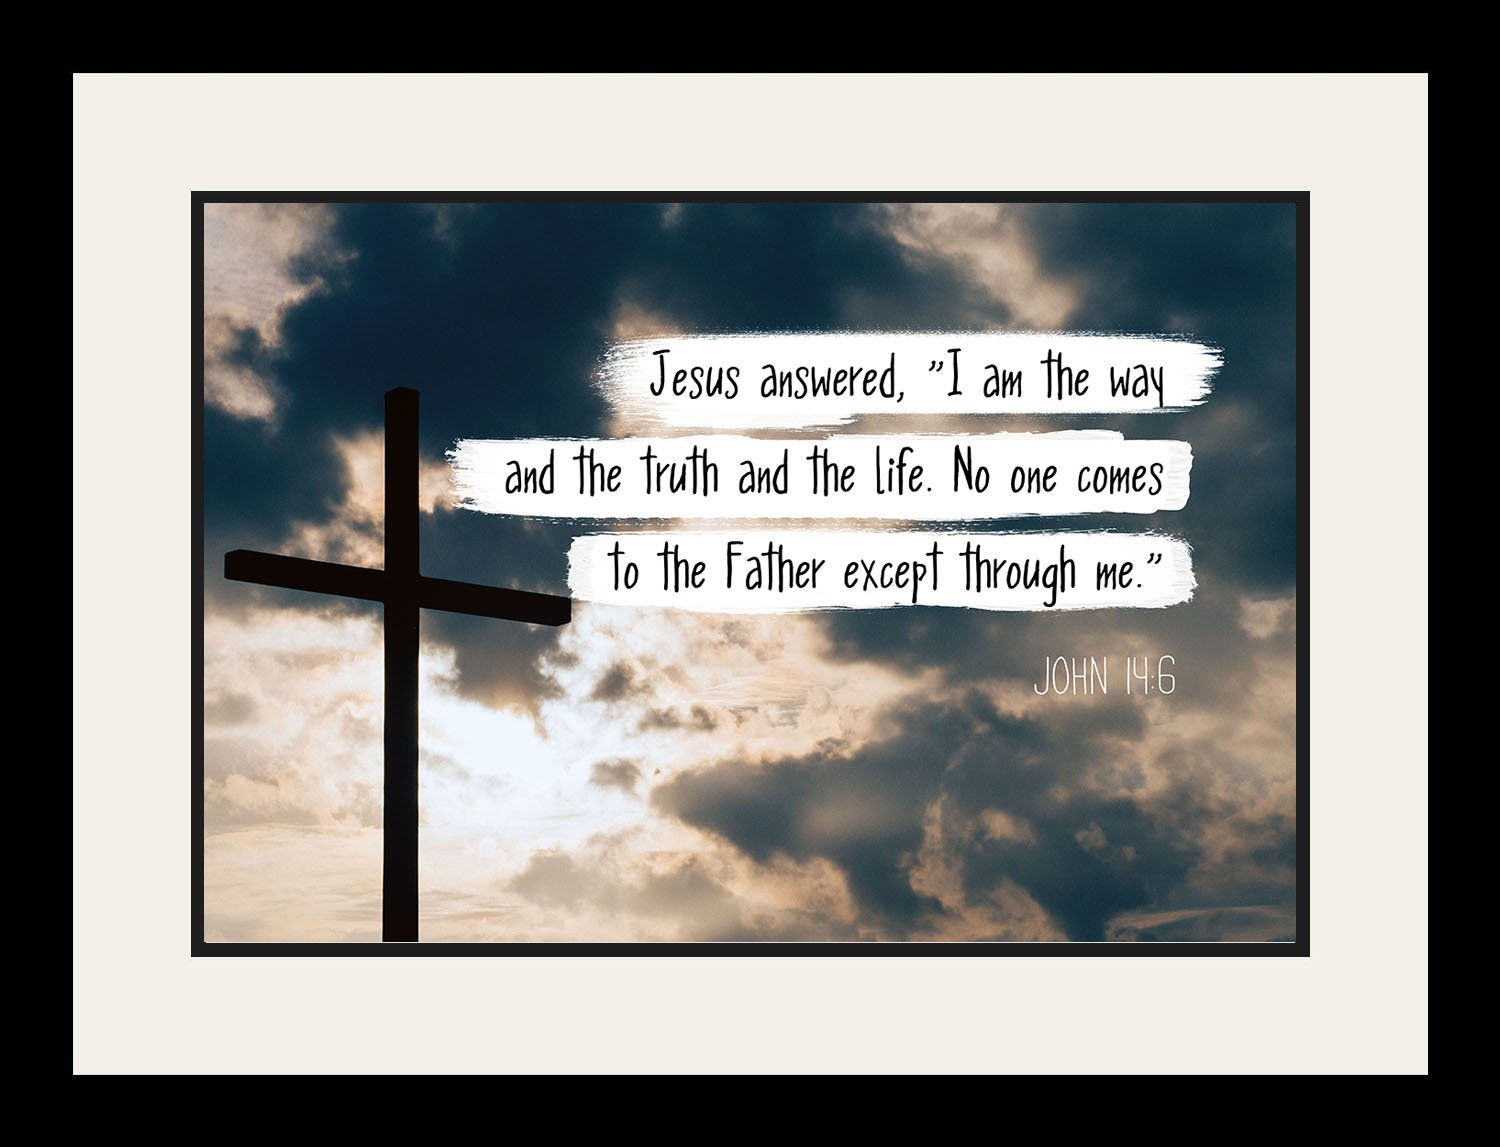 John 14:6 I Am The Way And The Truth - Christian Poster, Print, Picture, Framed Wall Art Decor - Bible Verse Quotes Collection - Religious Gift For Holidays Christmas Baptism (19x25 Framed) by WeSellPhotos